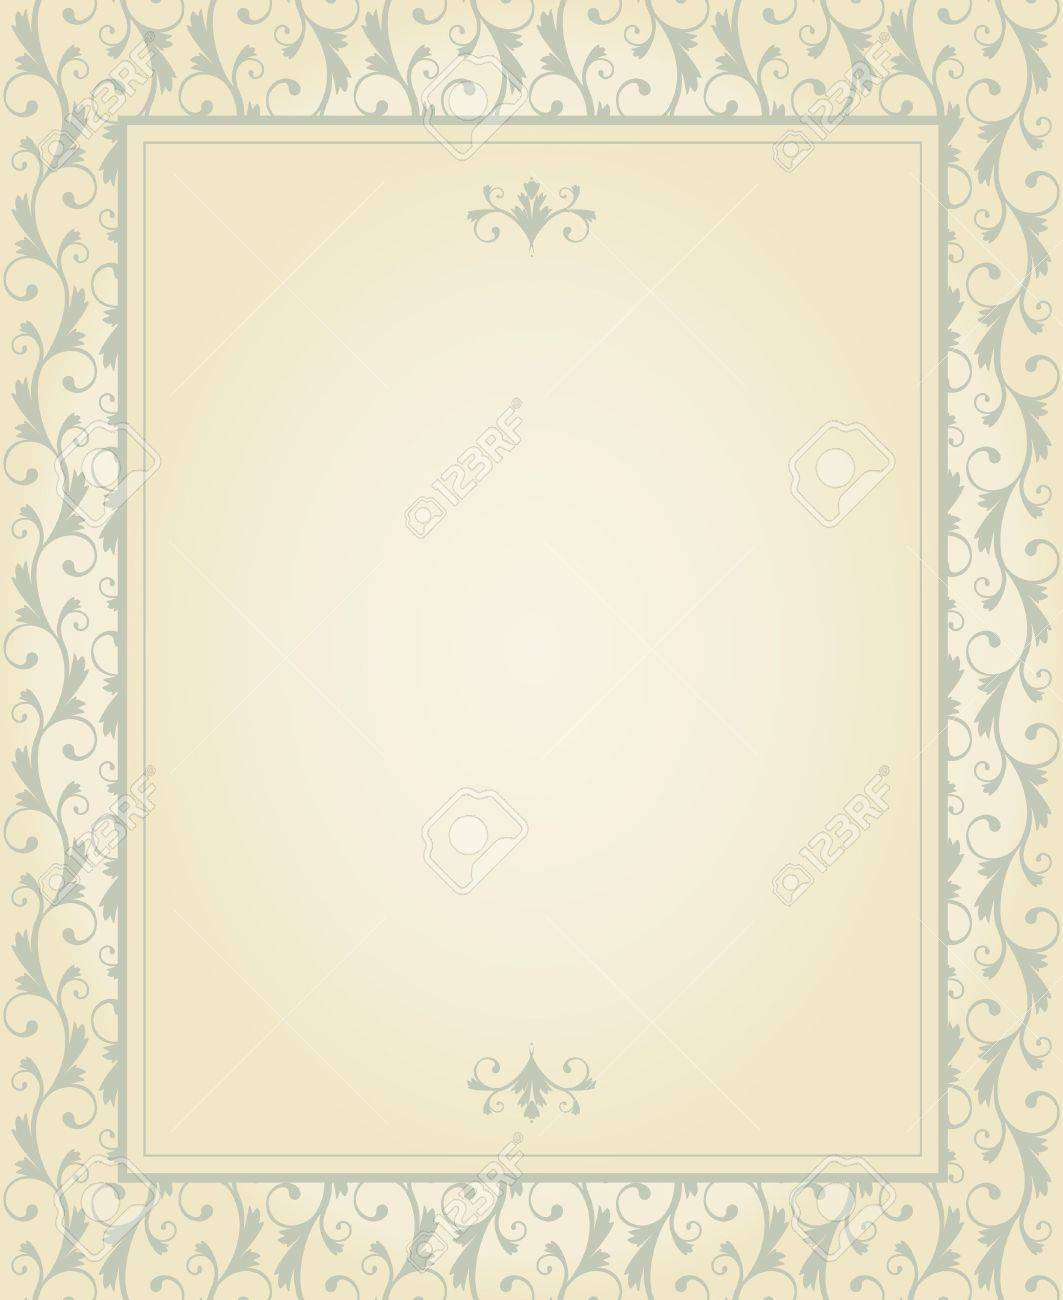 greeting card template in vintage style elements are grouped